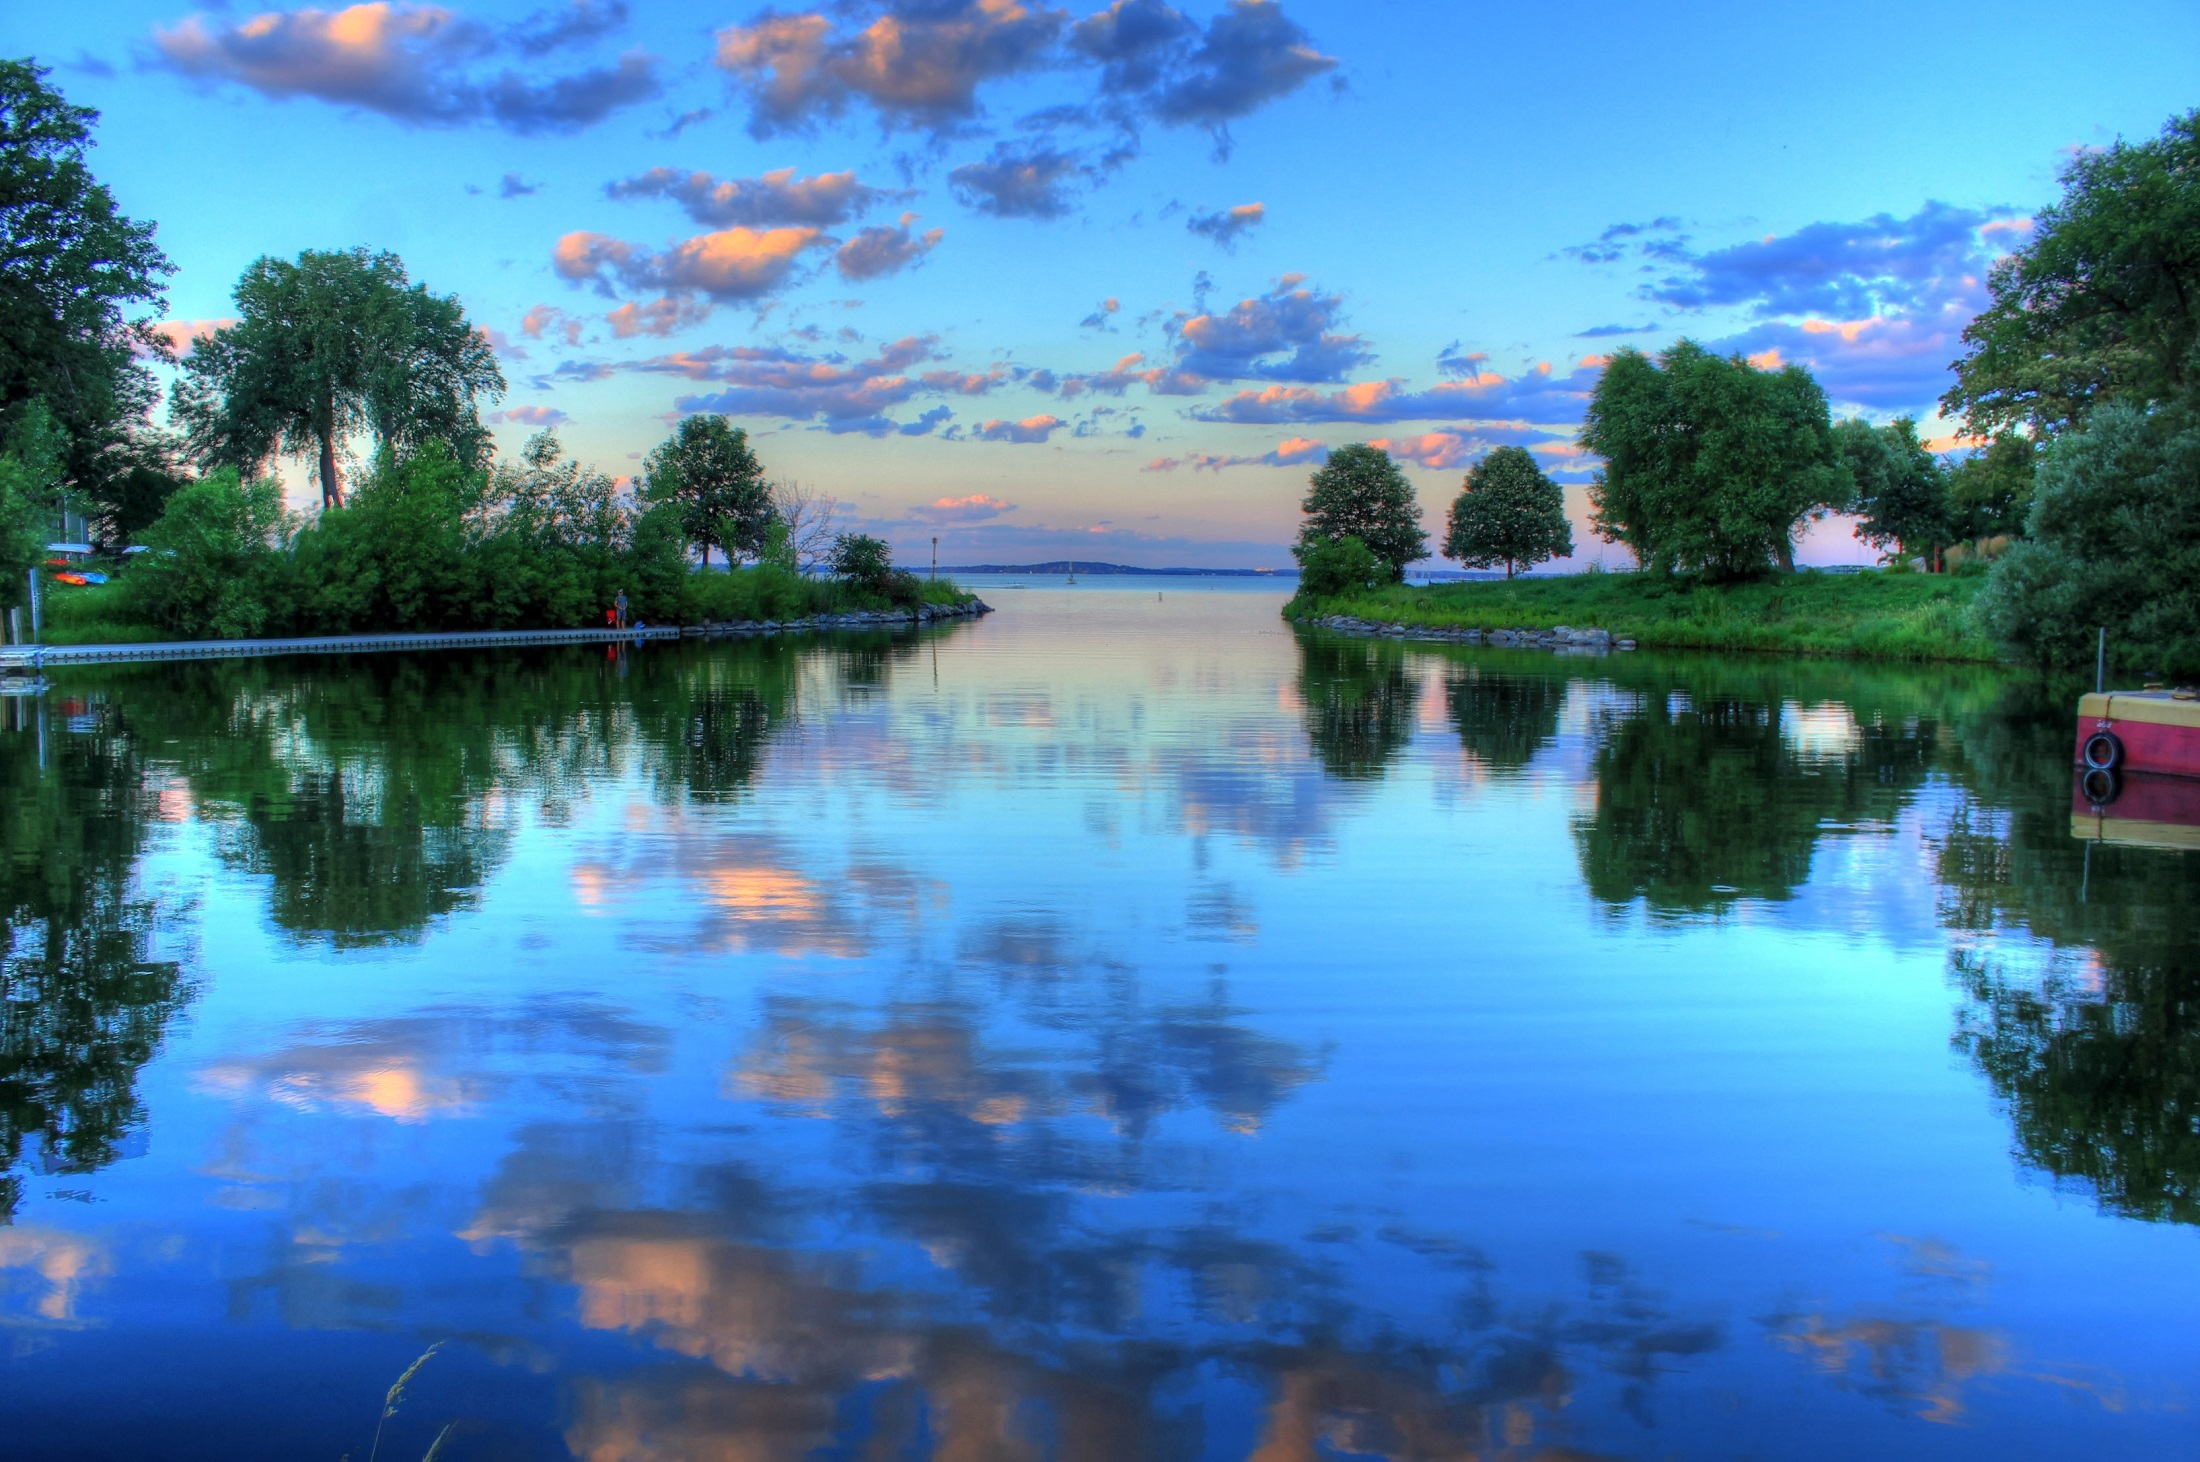 Lake Geneva with still waters reflecting the sky, trees and dig lining the lakeshore